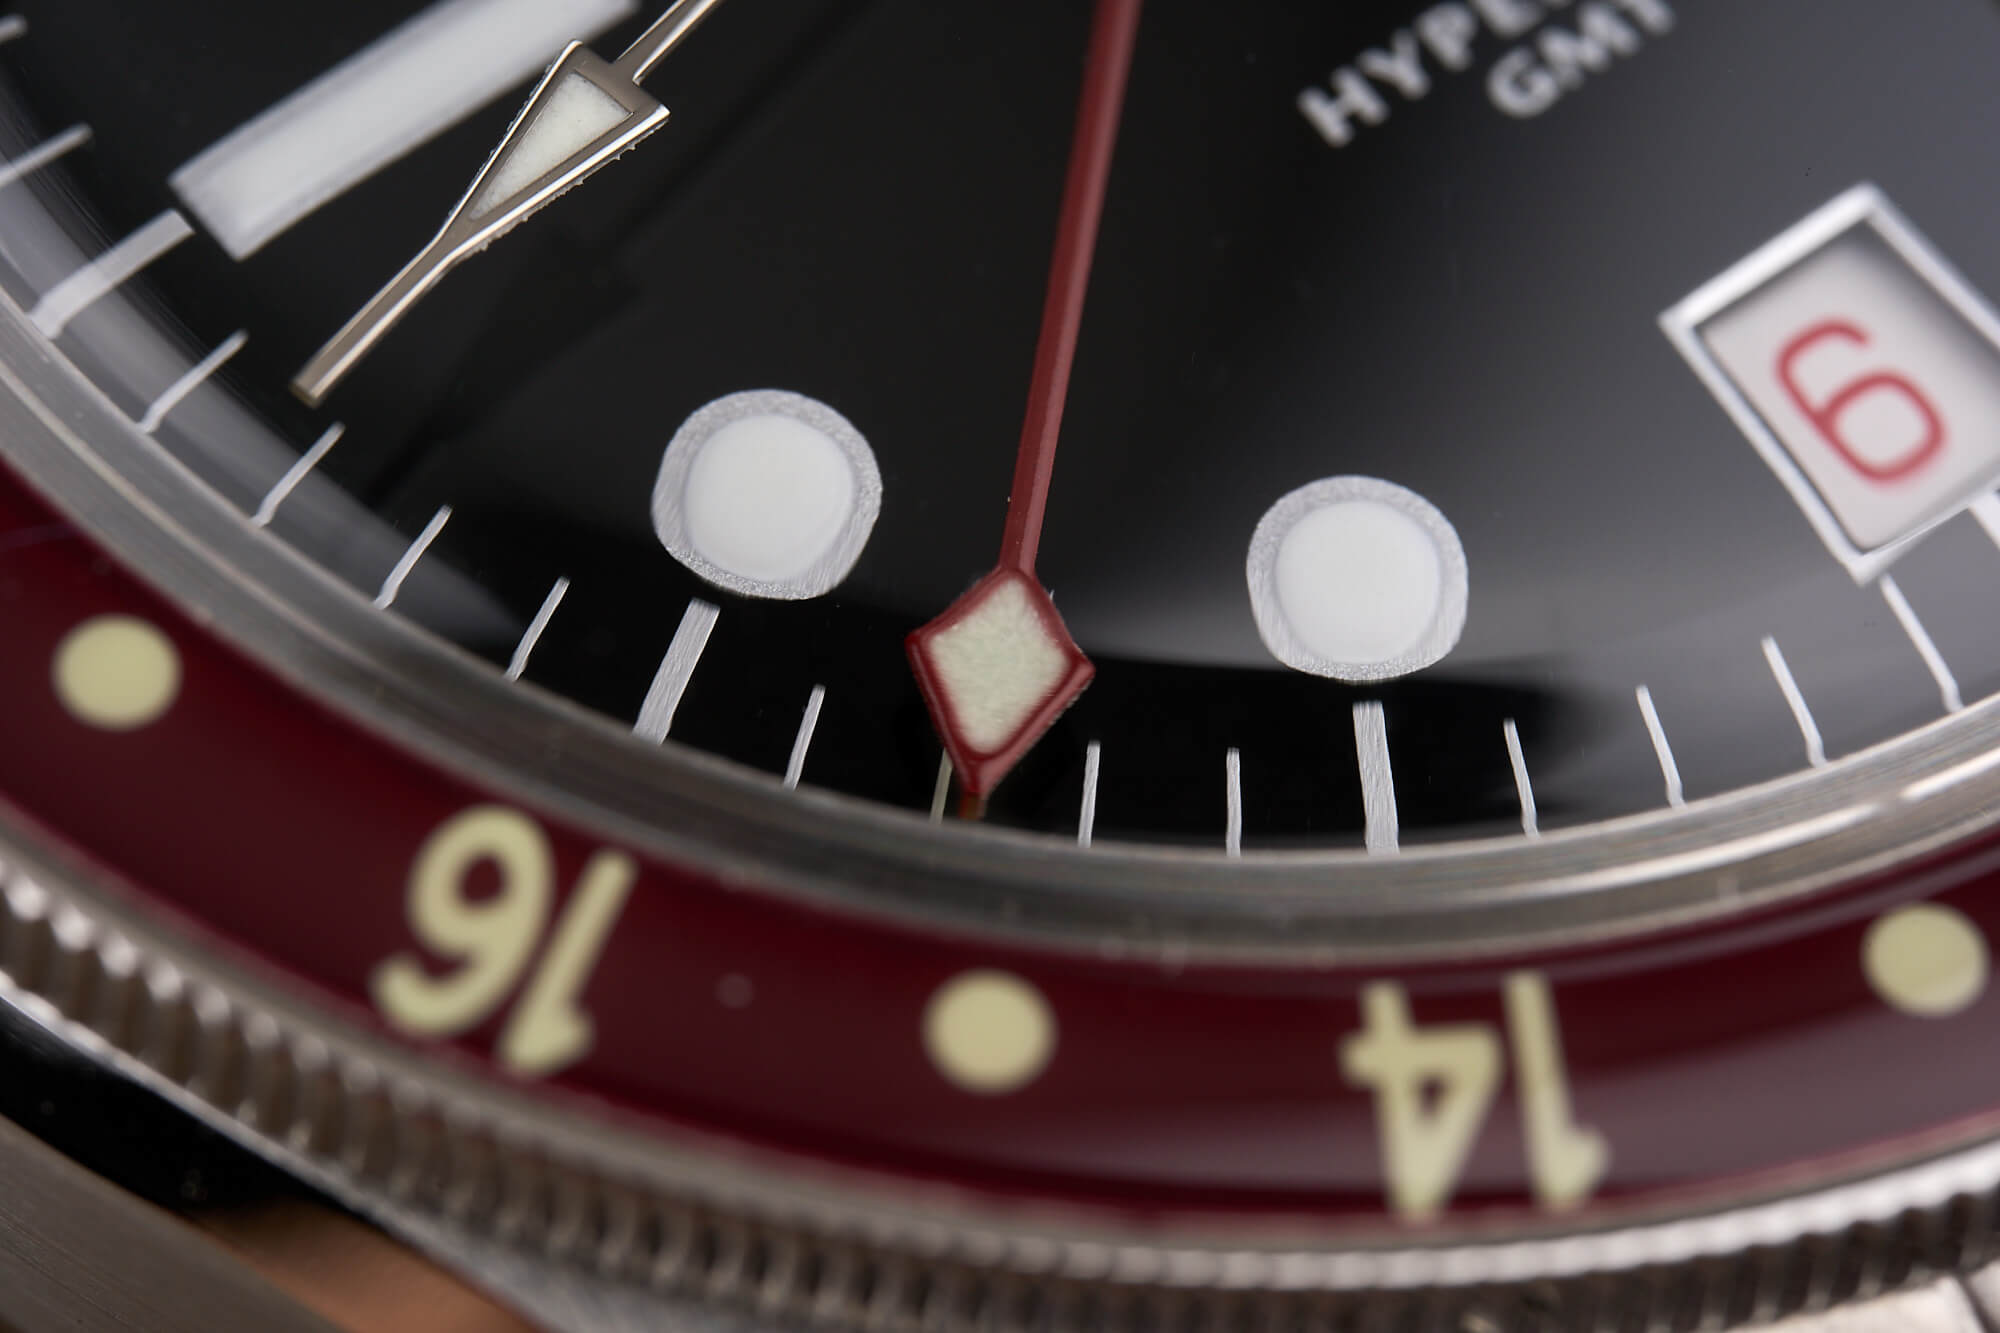 lorier-hyperion-gmt-21